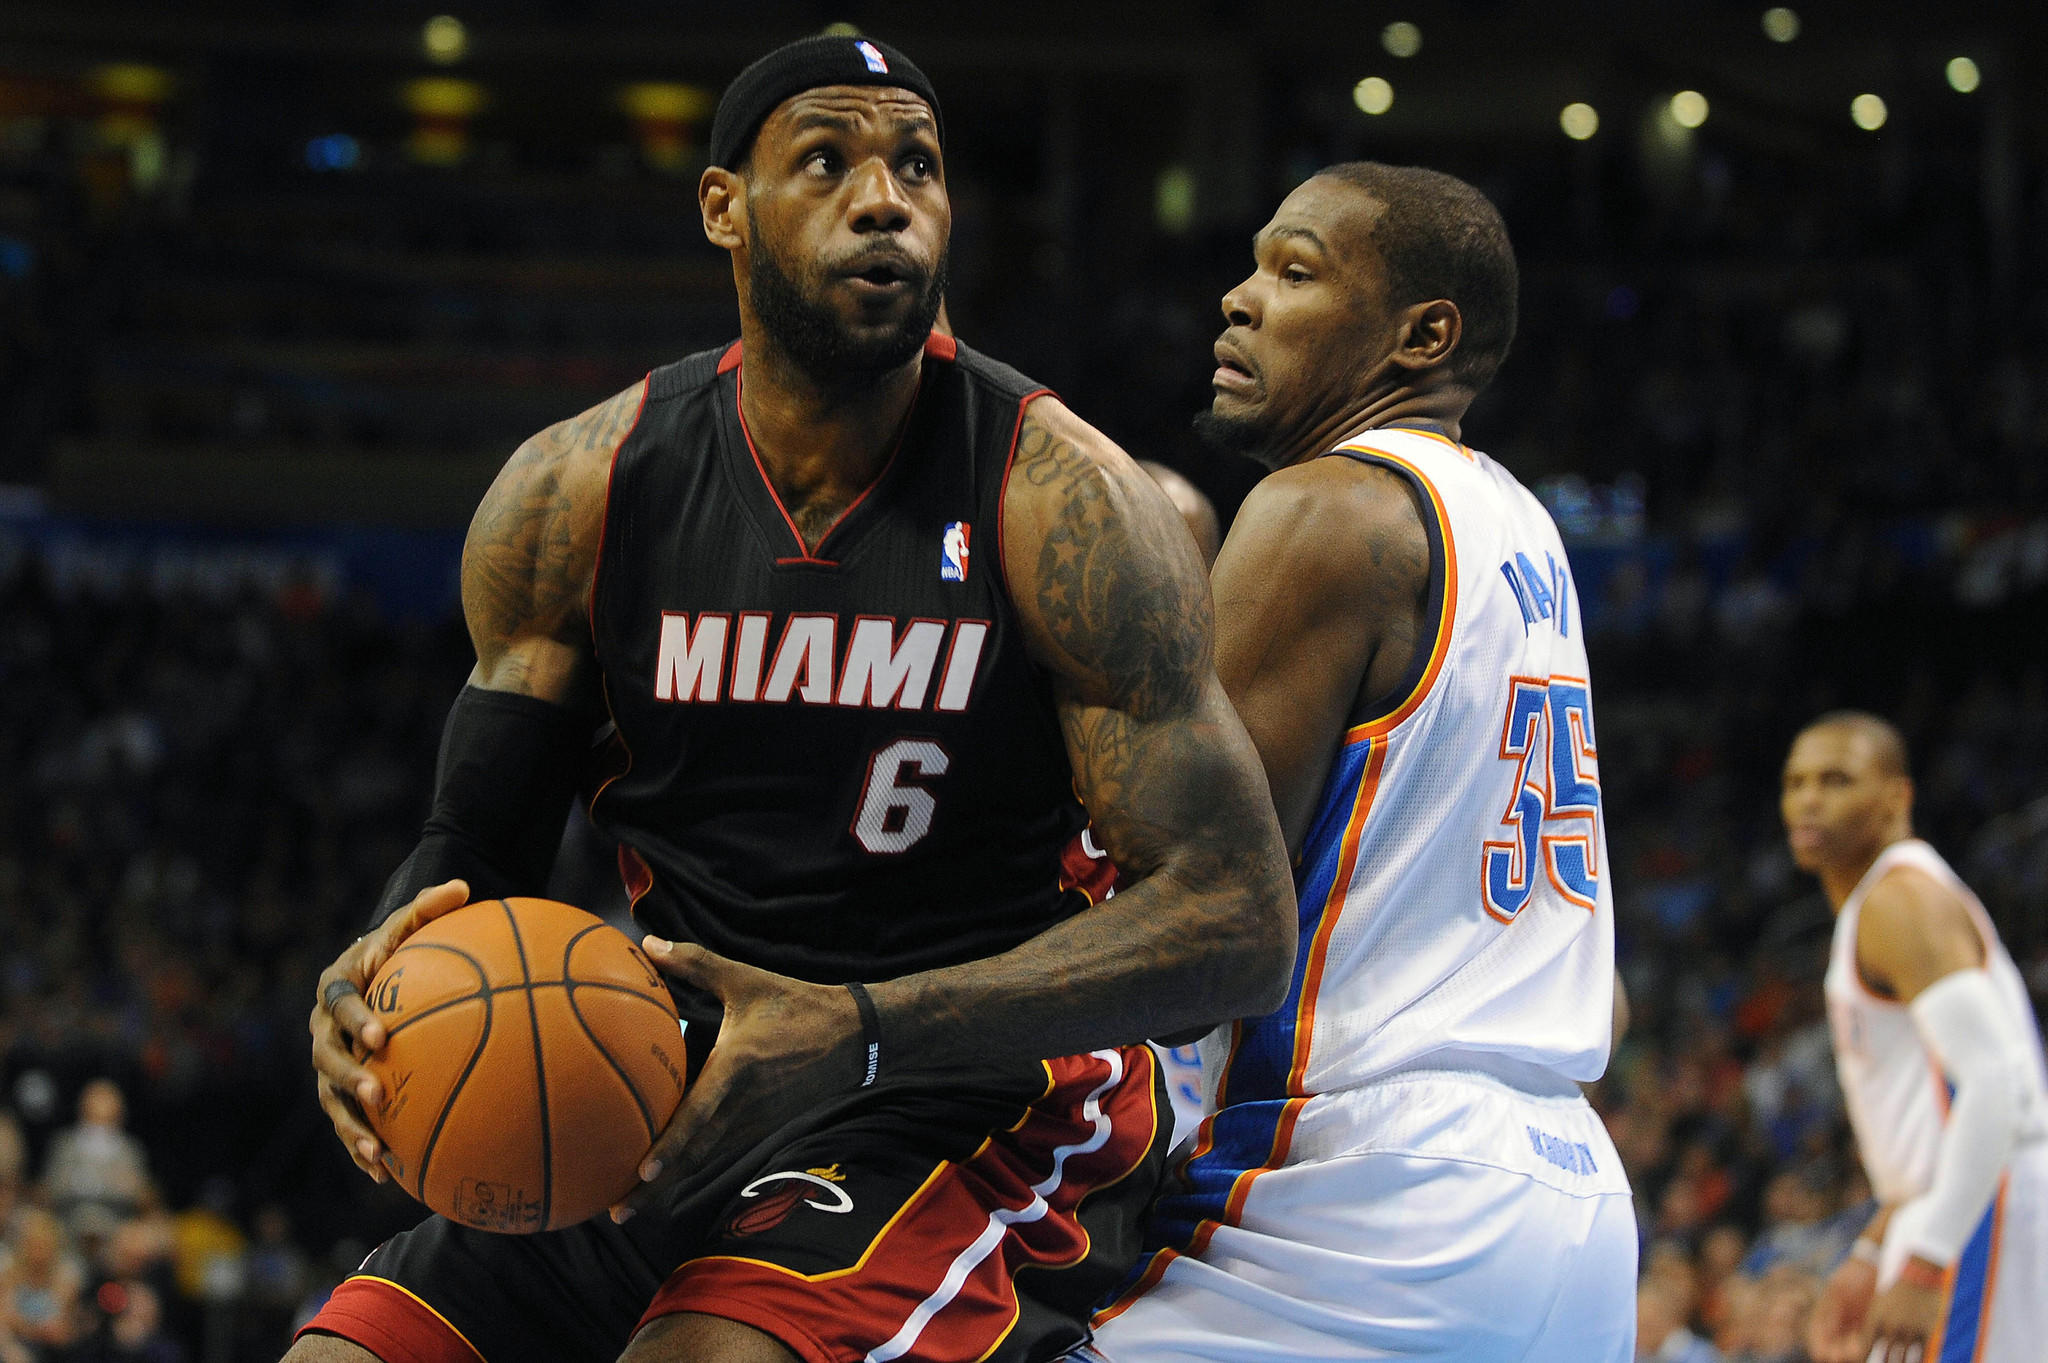 Miami Heat small forward LeBron James (6) handles the ball while being guarded by Oklahoma City Thunder small forward Kevin Durant (35).